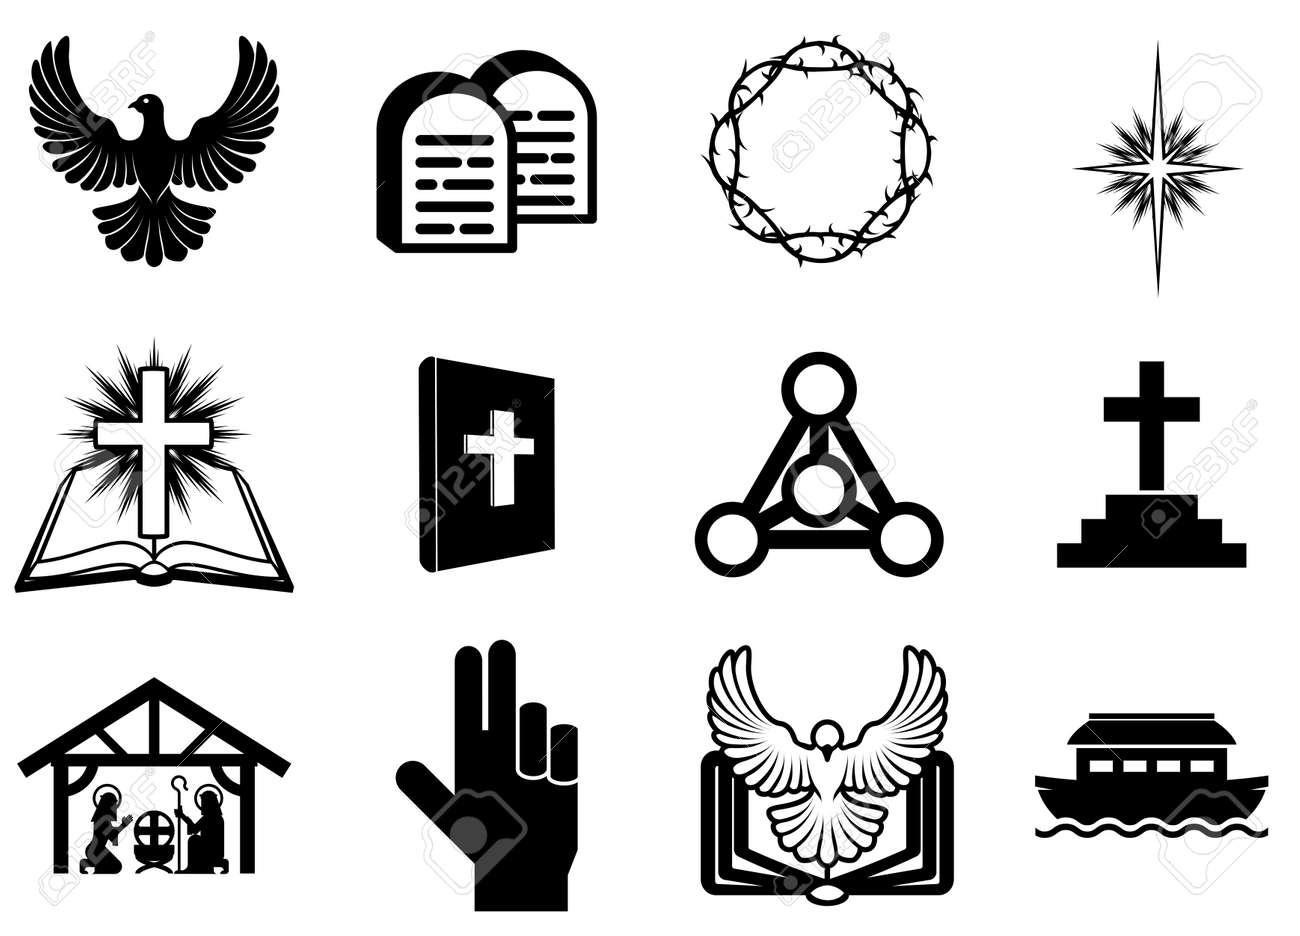 Set of christian religious icons signs and symbols royalty free set of christian religious icons signs and symbols stock vector 19838294 buycottarizona Image collections